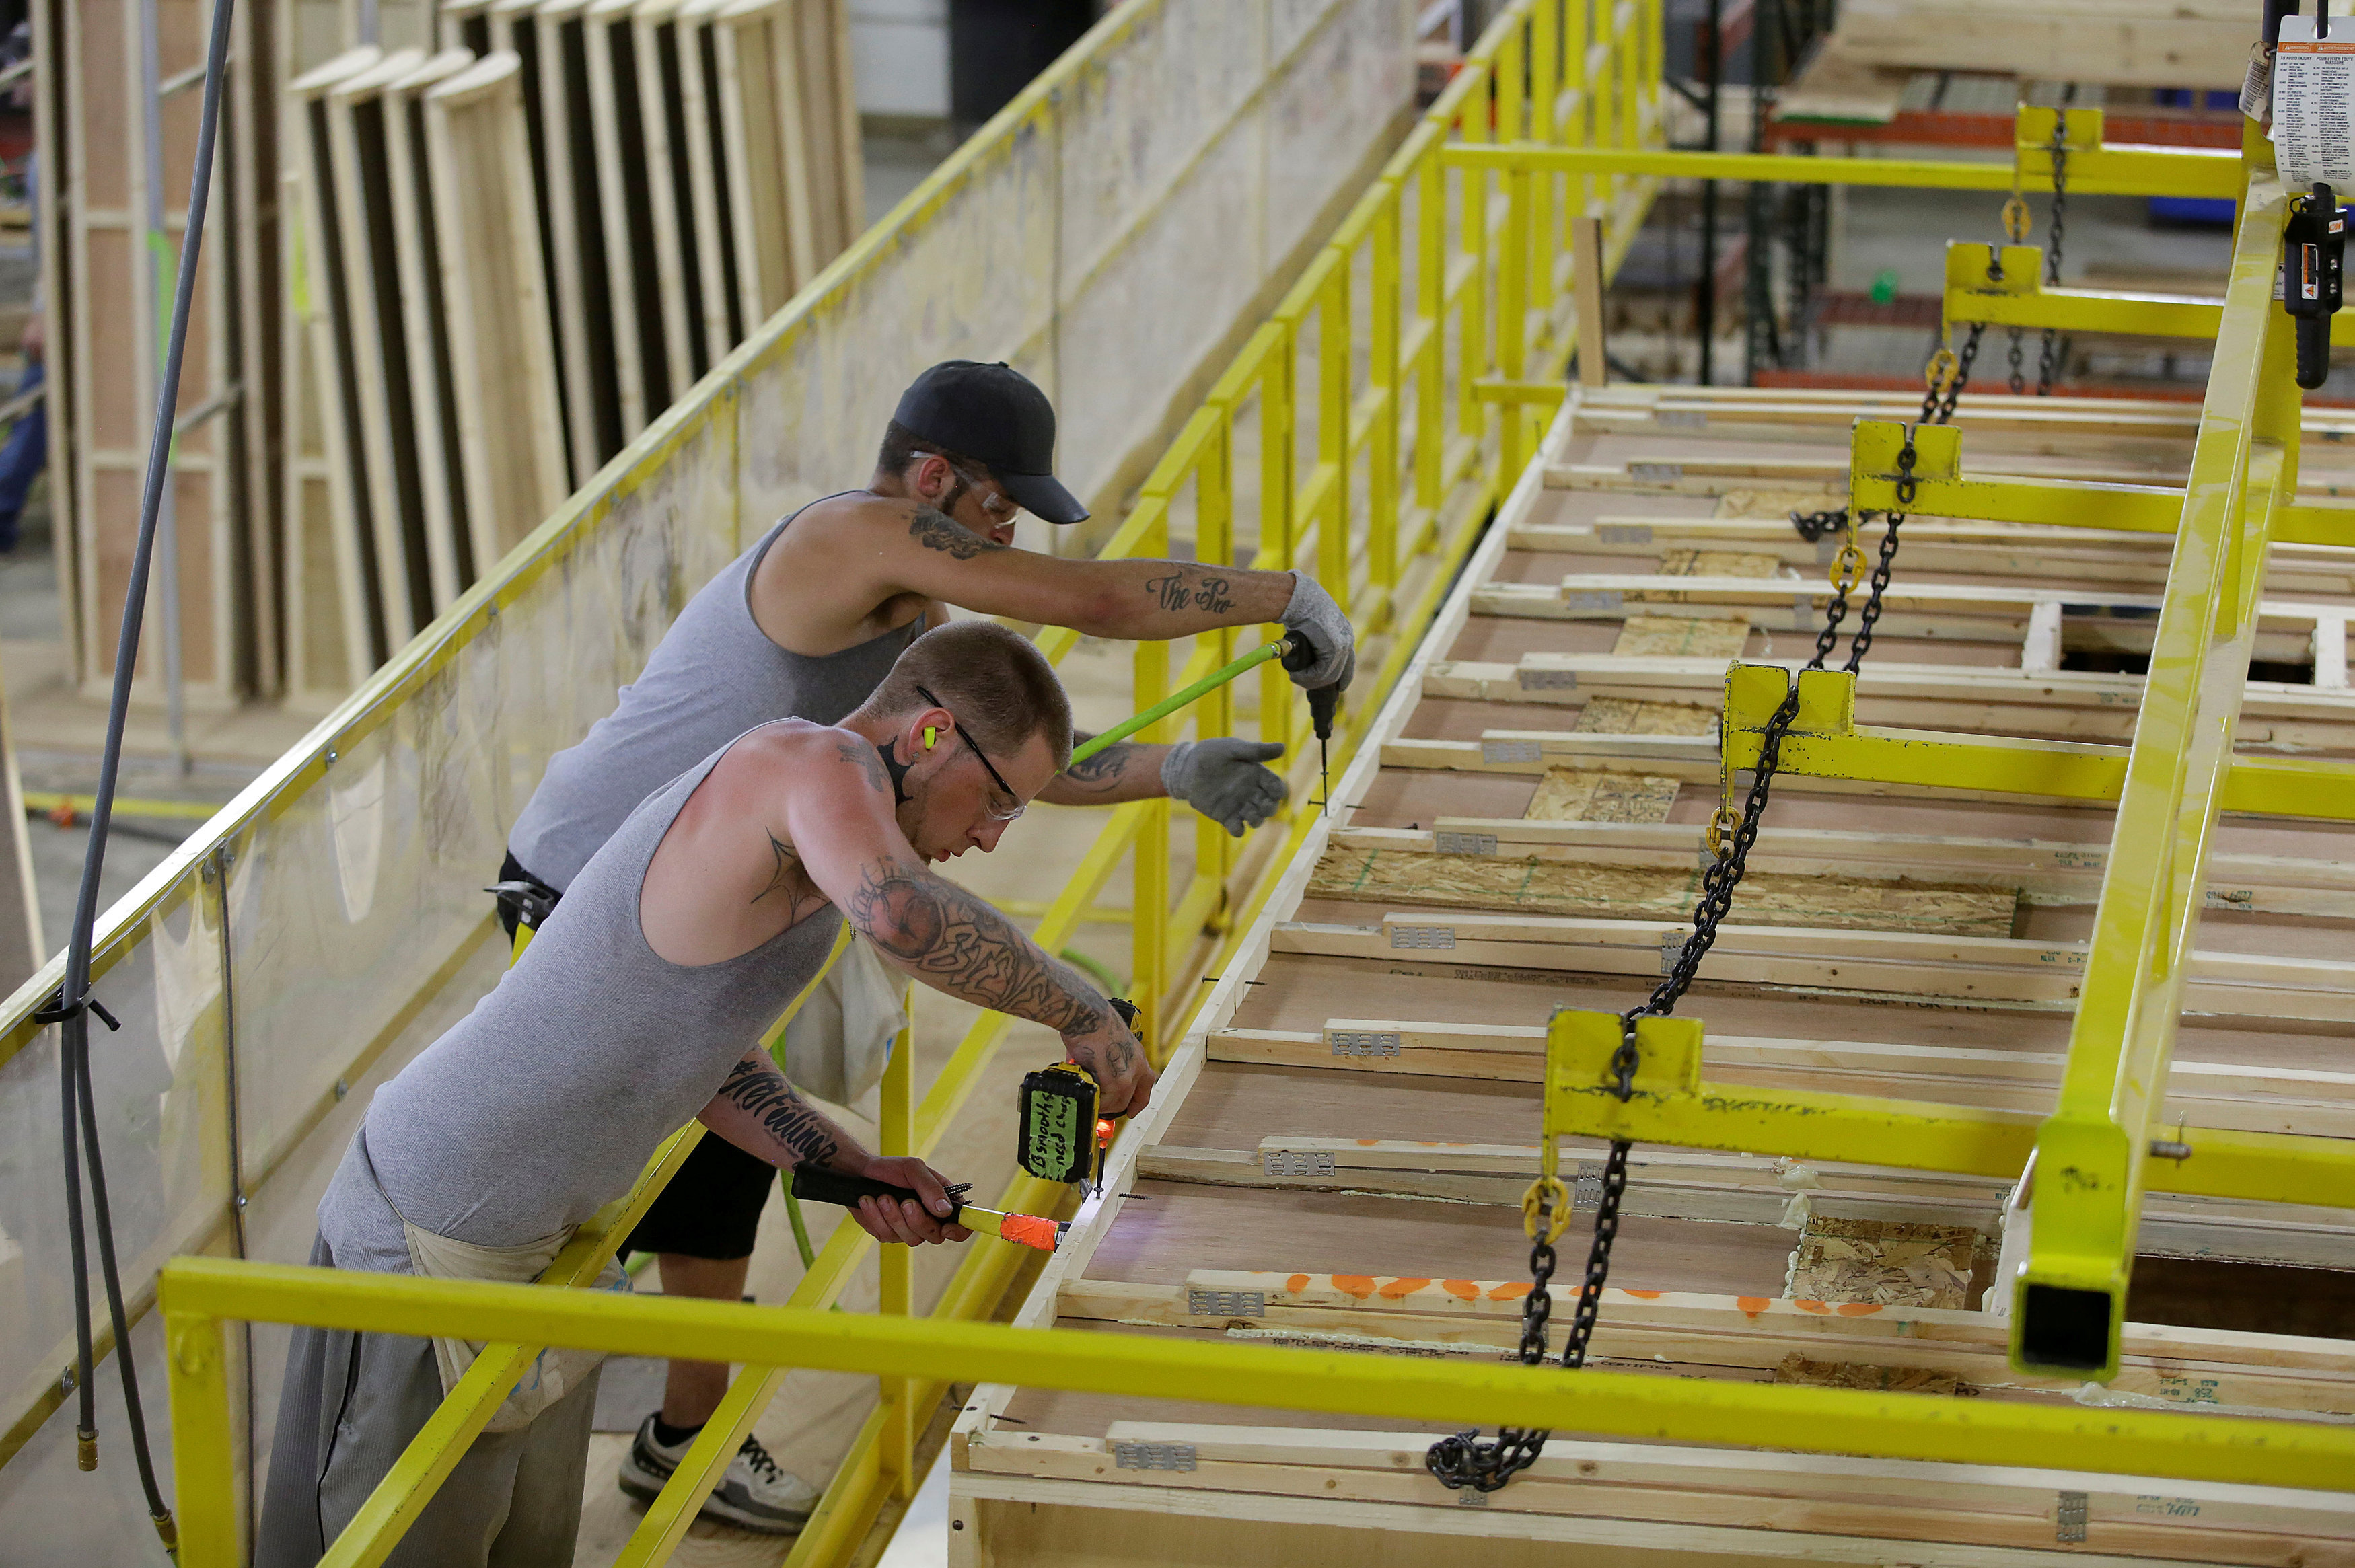 Workers build the roof of a single axel towable Pioneer traditional recreational vehicle at the Thor Industries Heartland RV Assembly Plant in Elkhart, Indiana, U.S. on June 13, 2017